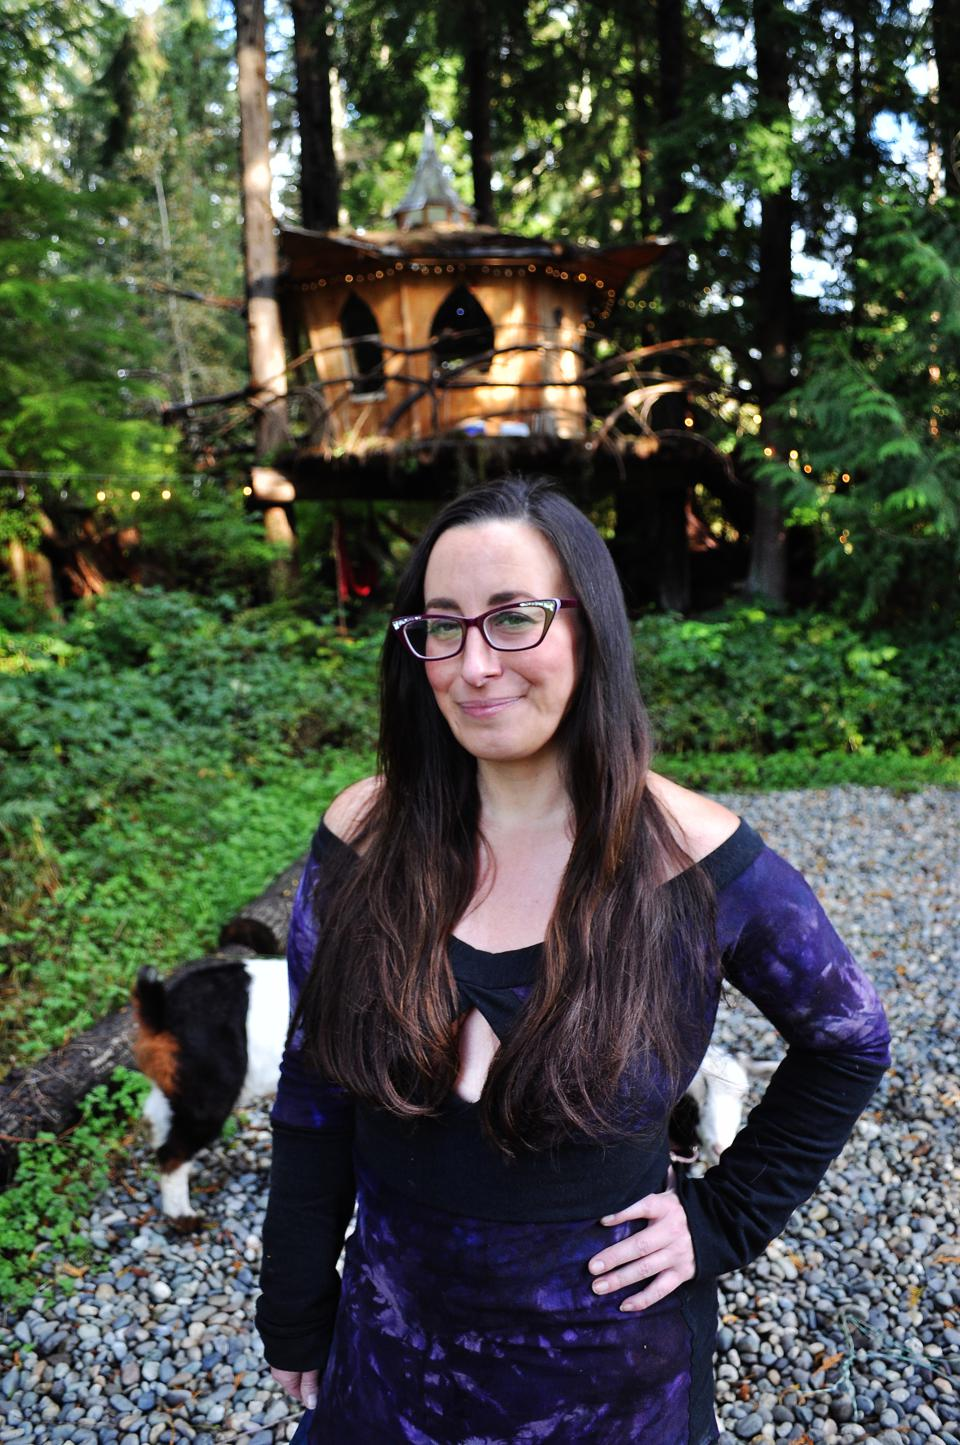 Tracy Rice, founder of Mountain Views Tree House Joint, in Monroe, Washington.